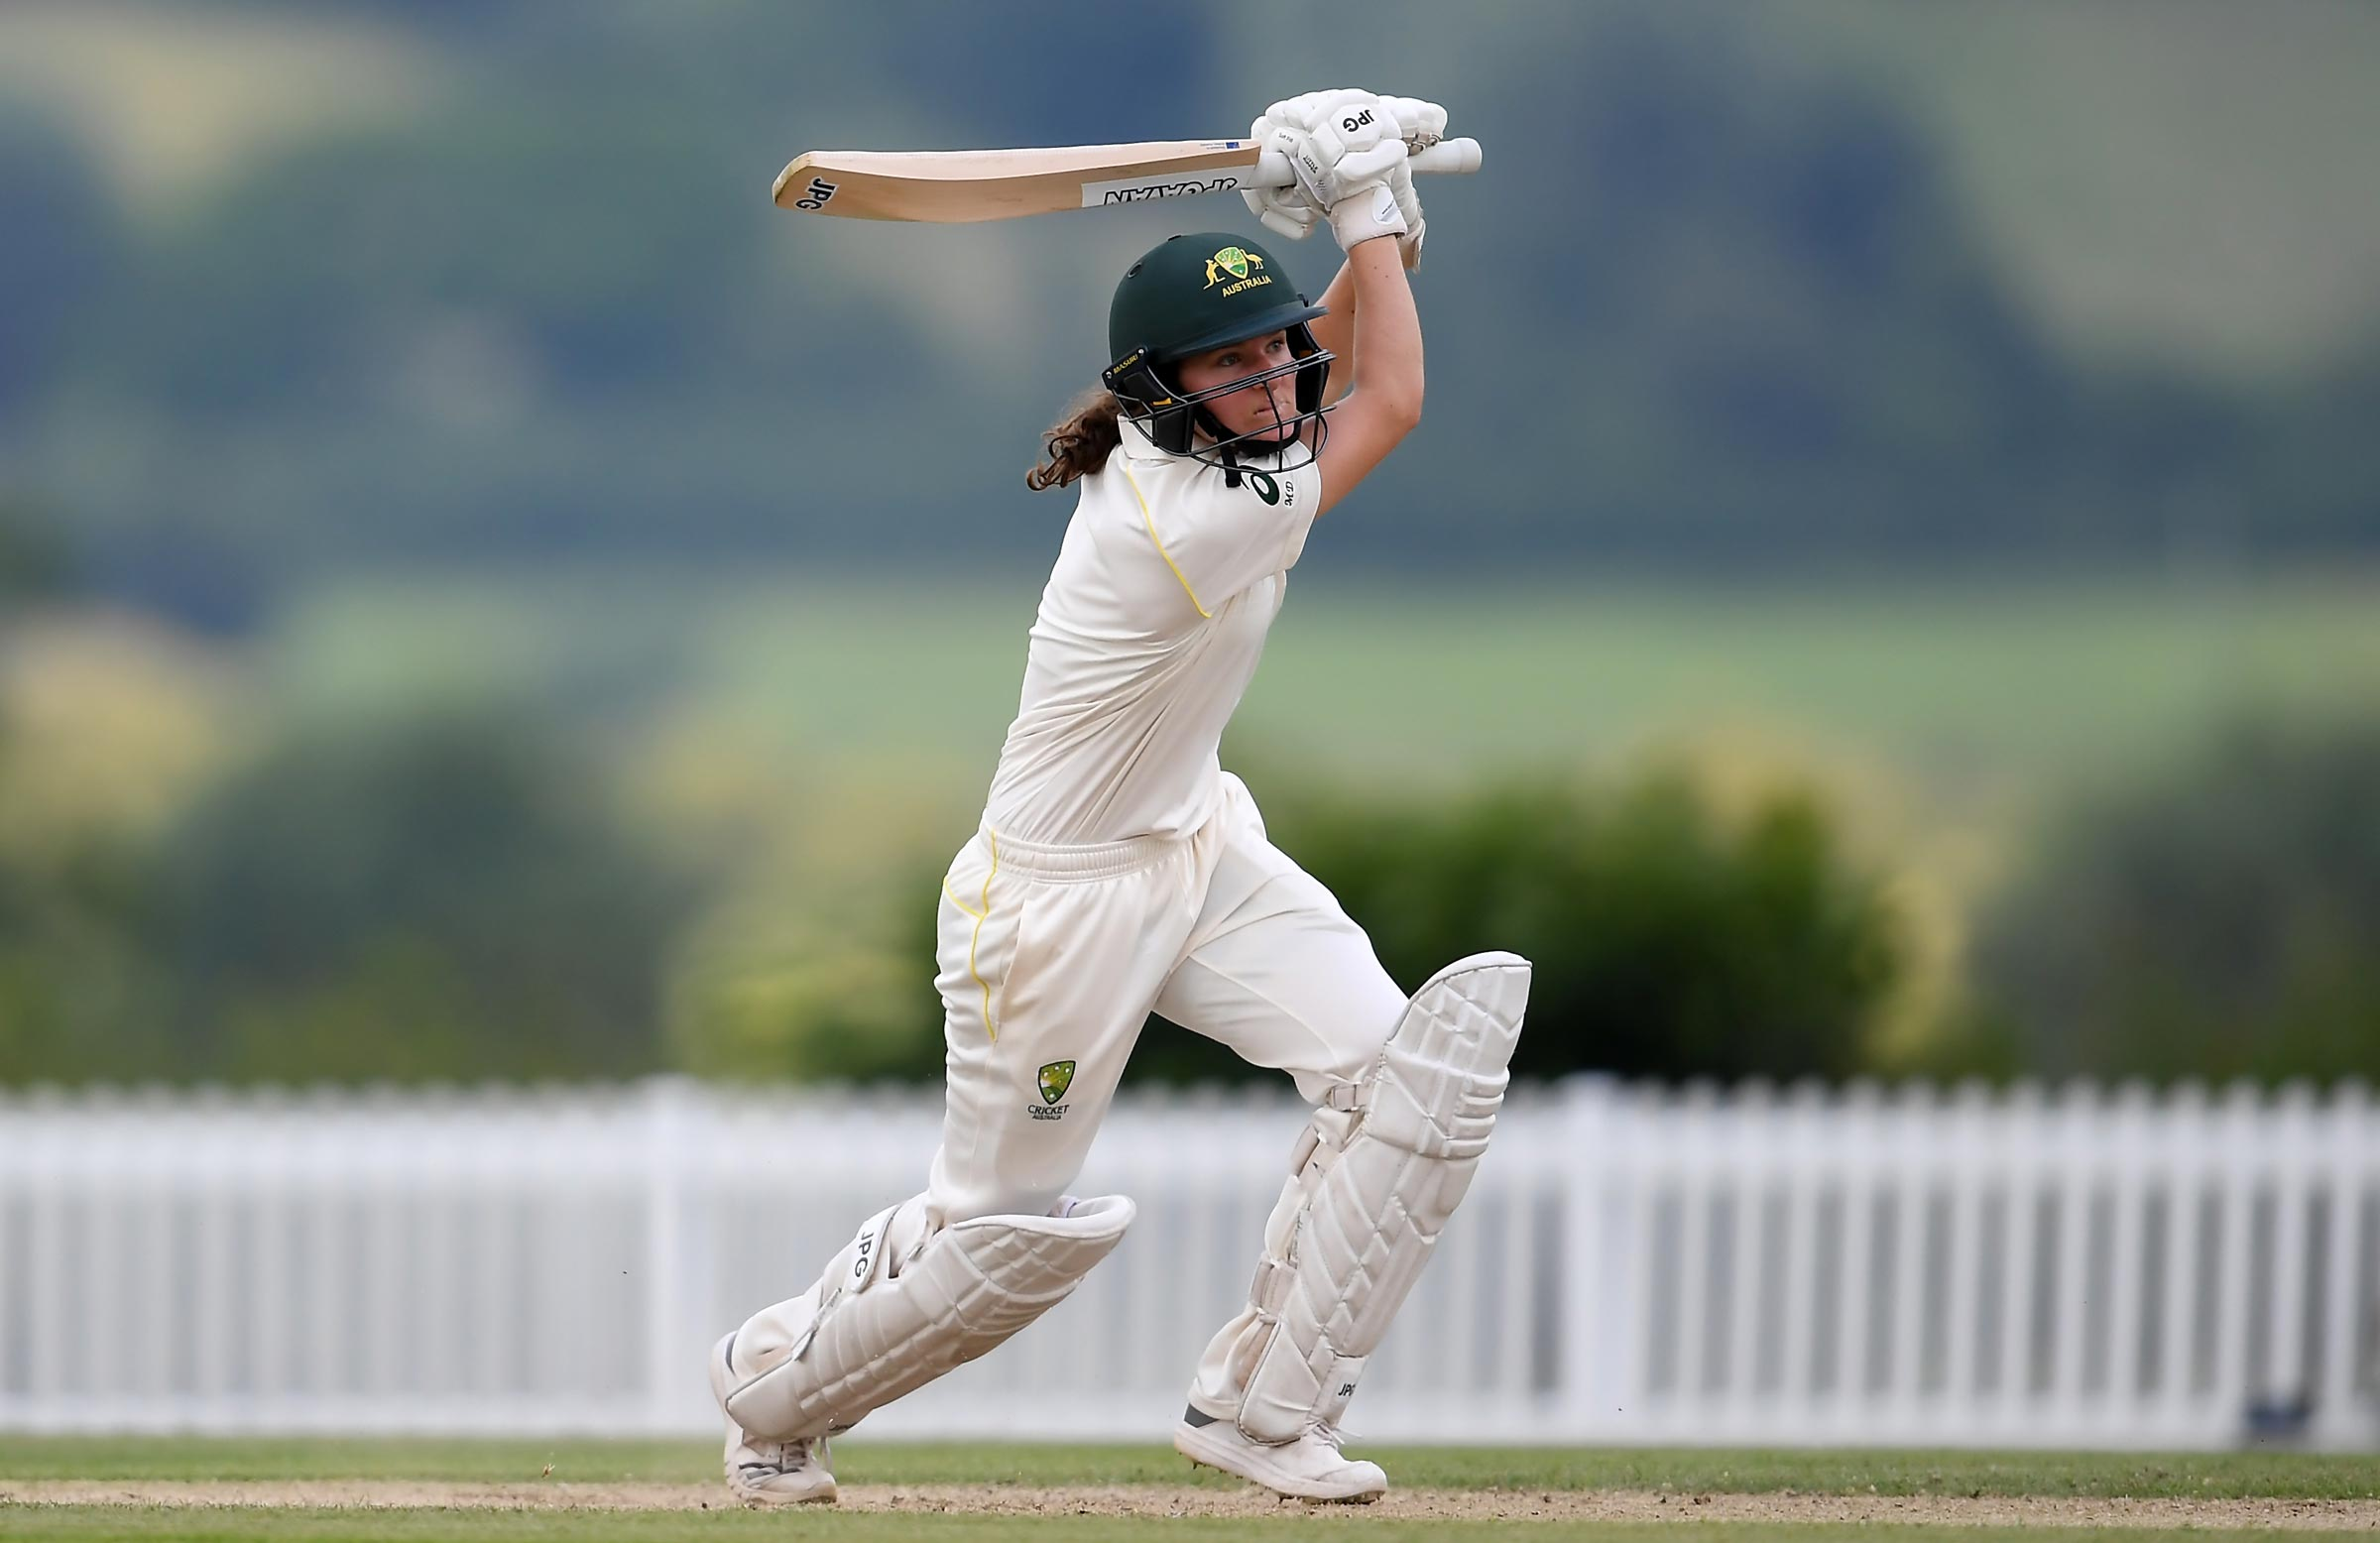 Darke in action for Australia A in England // Getty